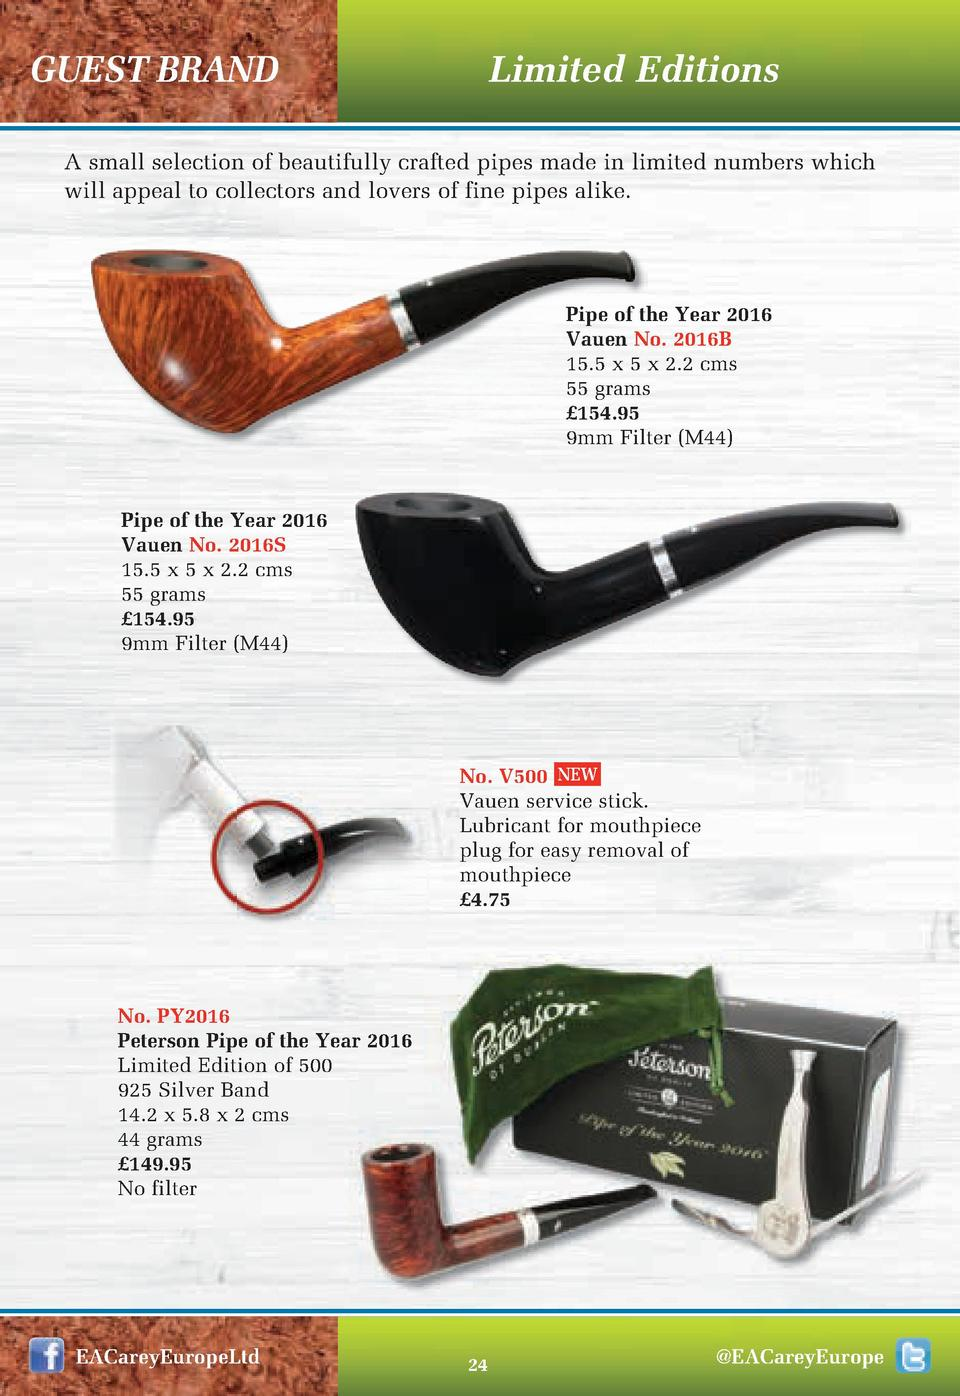 GUEST BRAND  Limited Editions  A small selection of beautifully crafted pipes made in limited numbers which will appeal to...